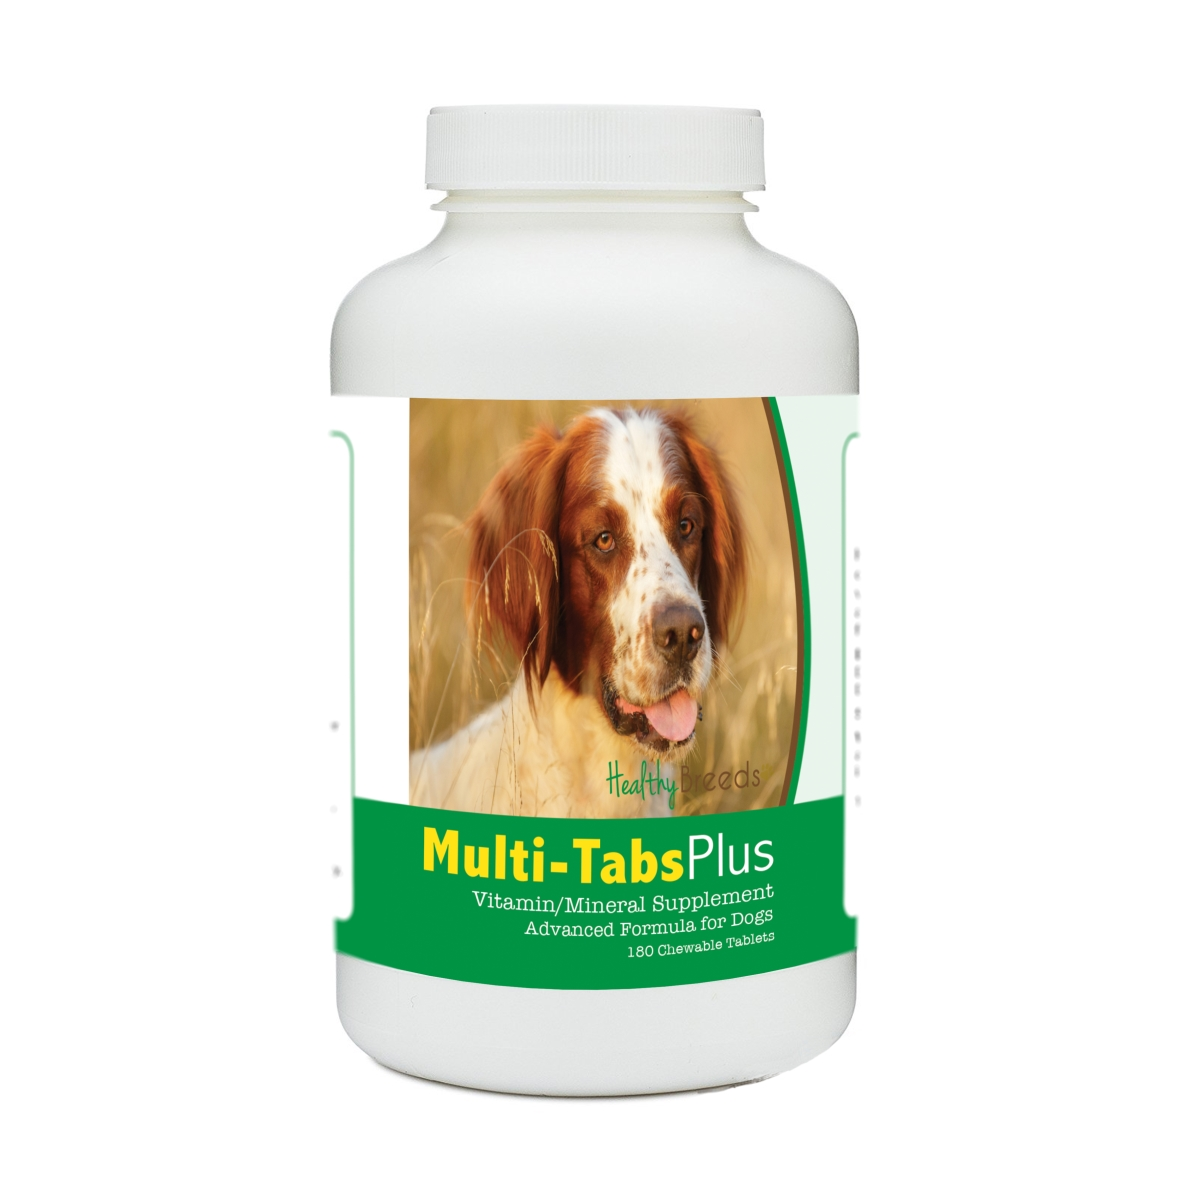 Healthy Breeds 840235175087 Irish Red & White Setter Multi-Tabs Plus Chewable Tablets - 180 Count